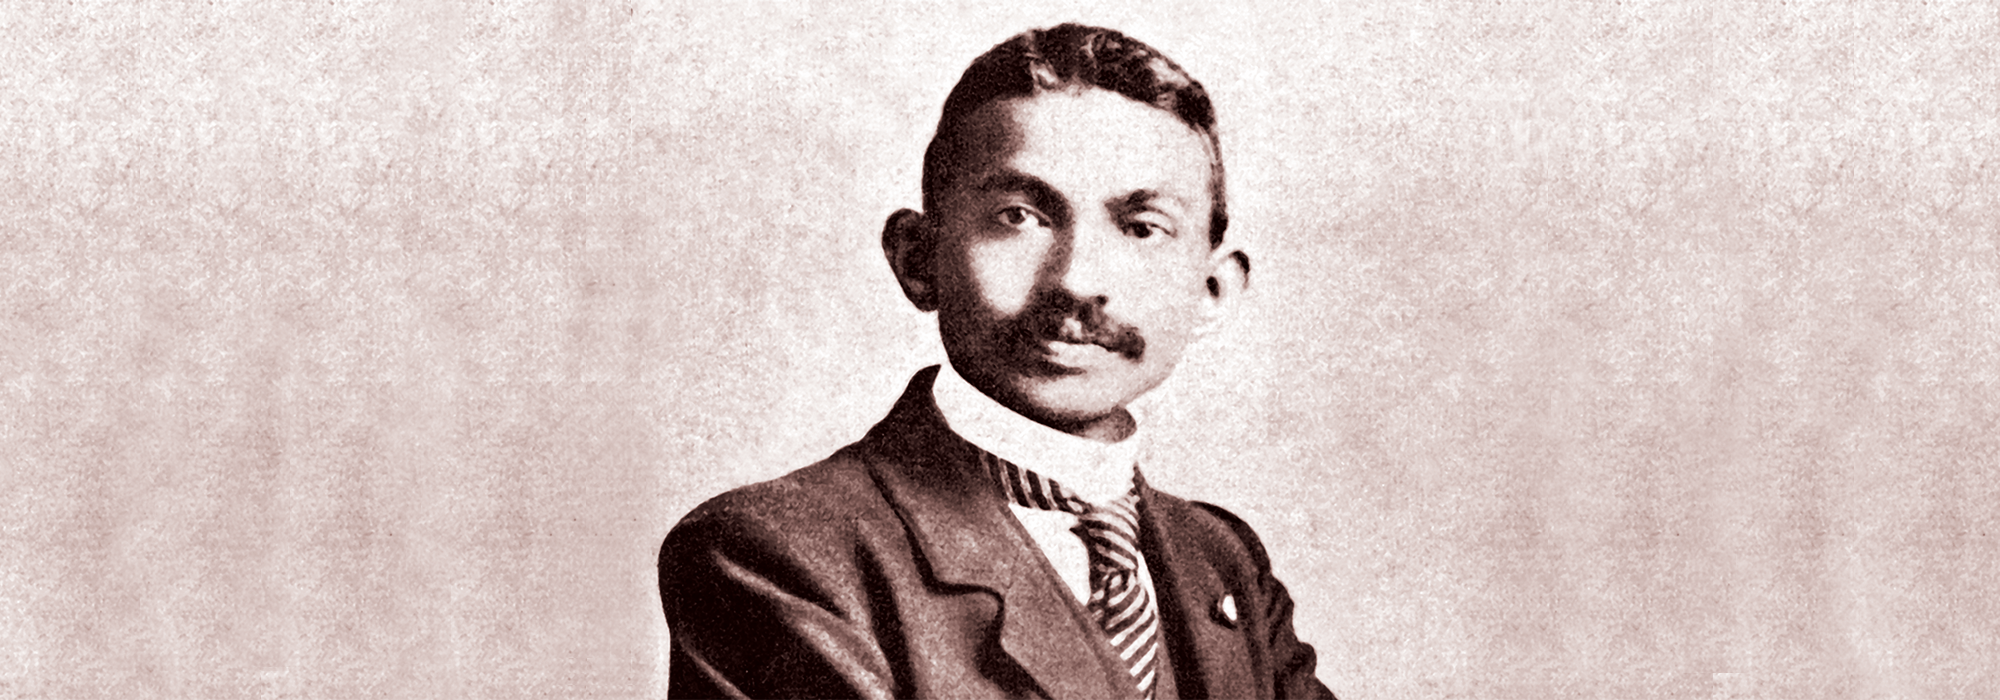 Gandhi at age 35 in South Africa